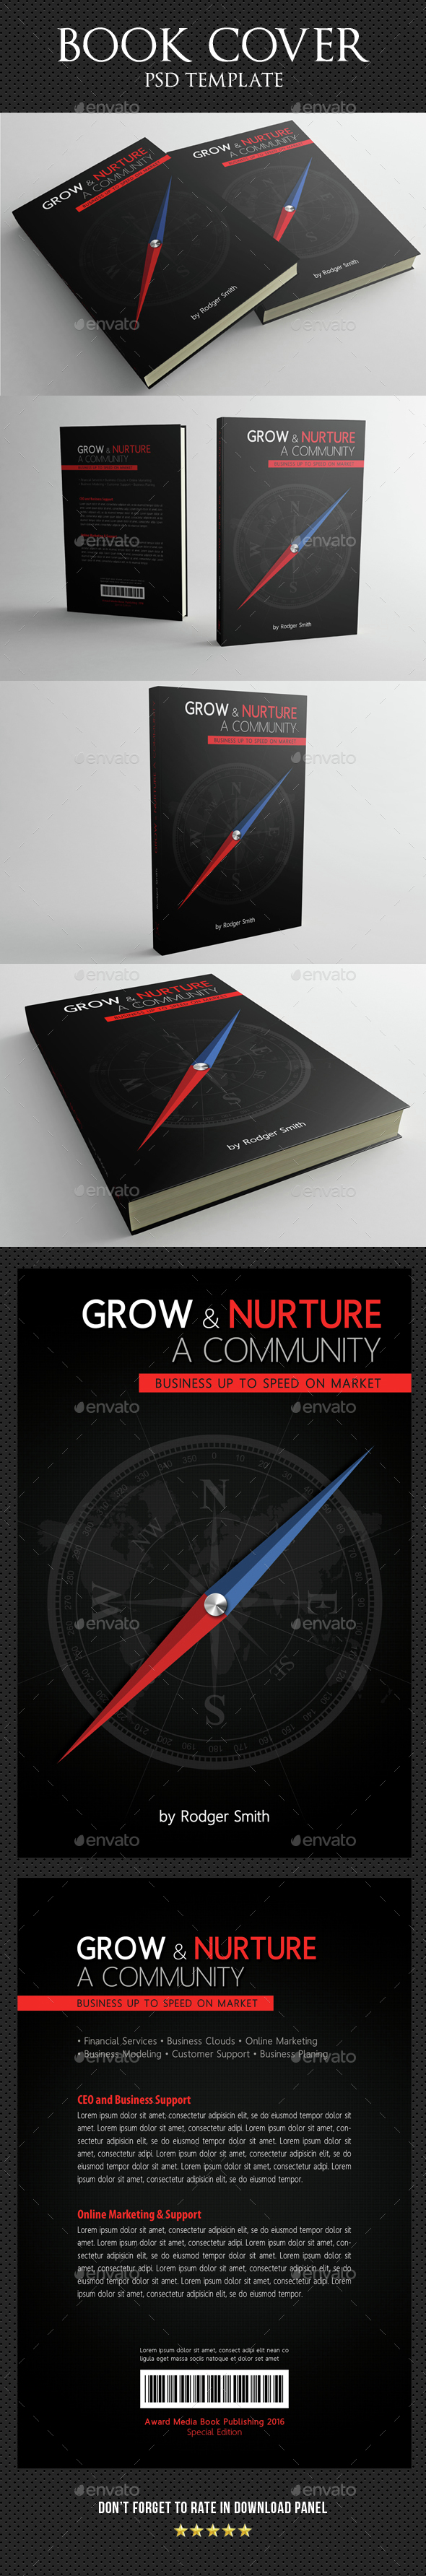 Book Cover Template 08 - Miscellaneous Print Templates